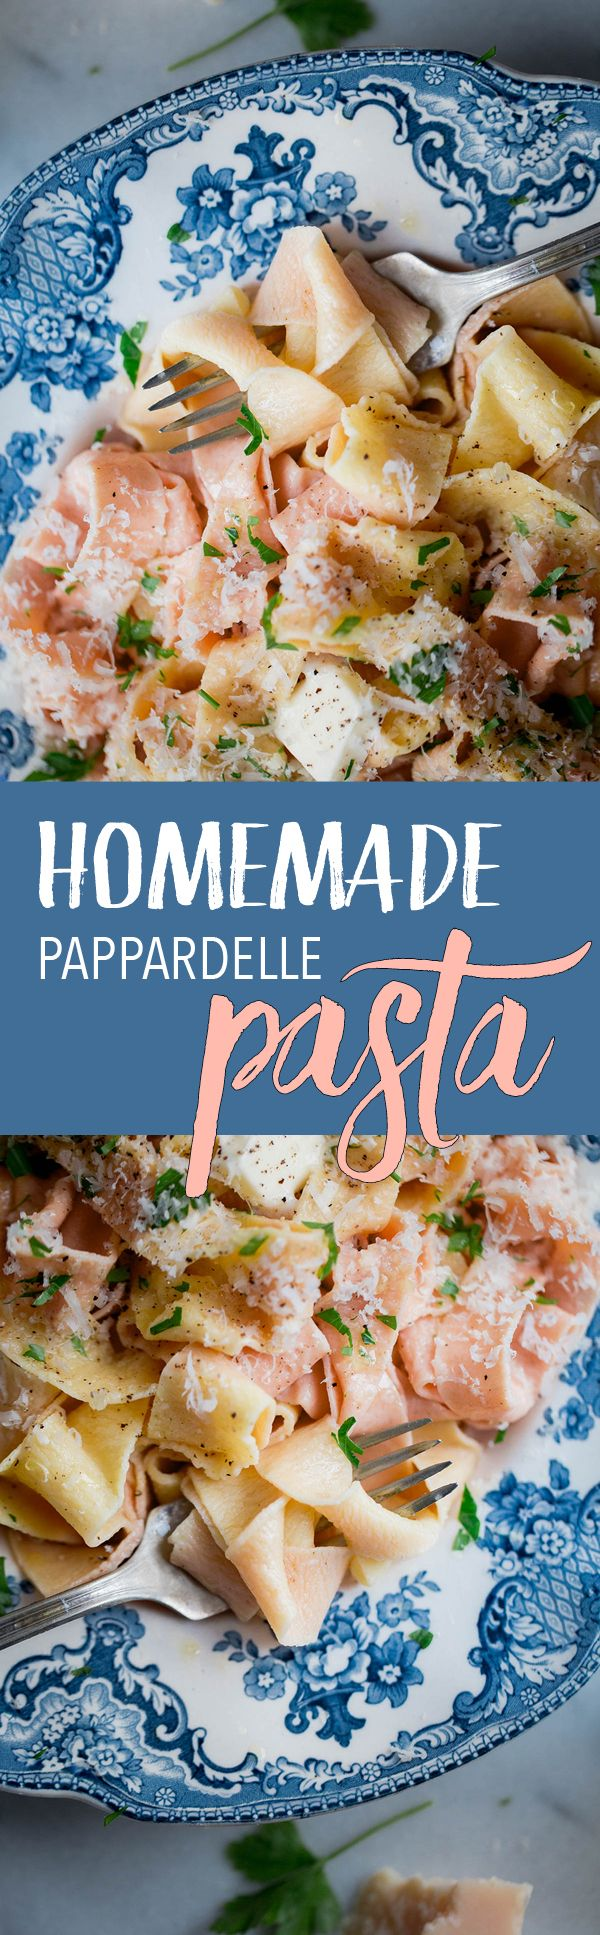 1000+ images about Pasta on Pinterest | Egg noodles, Spinach and ...